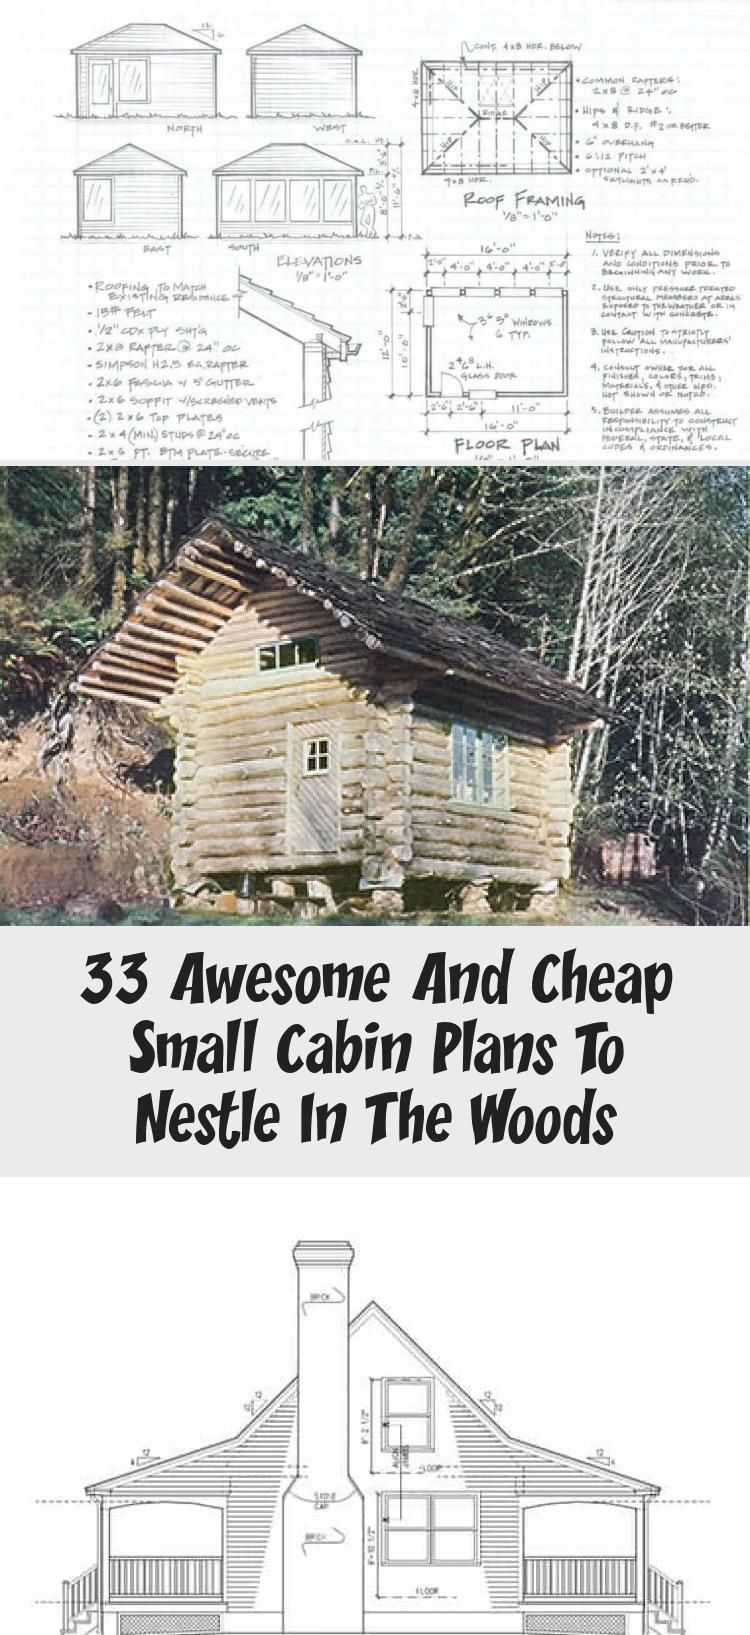 33 Free Or Cheap Small Cabin Plans To Nestle In The Woods Tinyhousedesigncheap Cabin Plans Small Cabin Plans Small Cabin